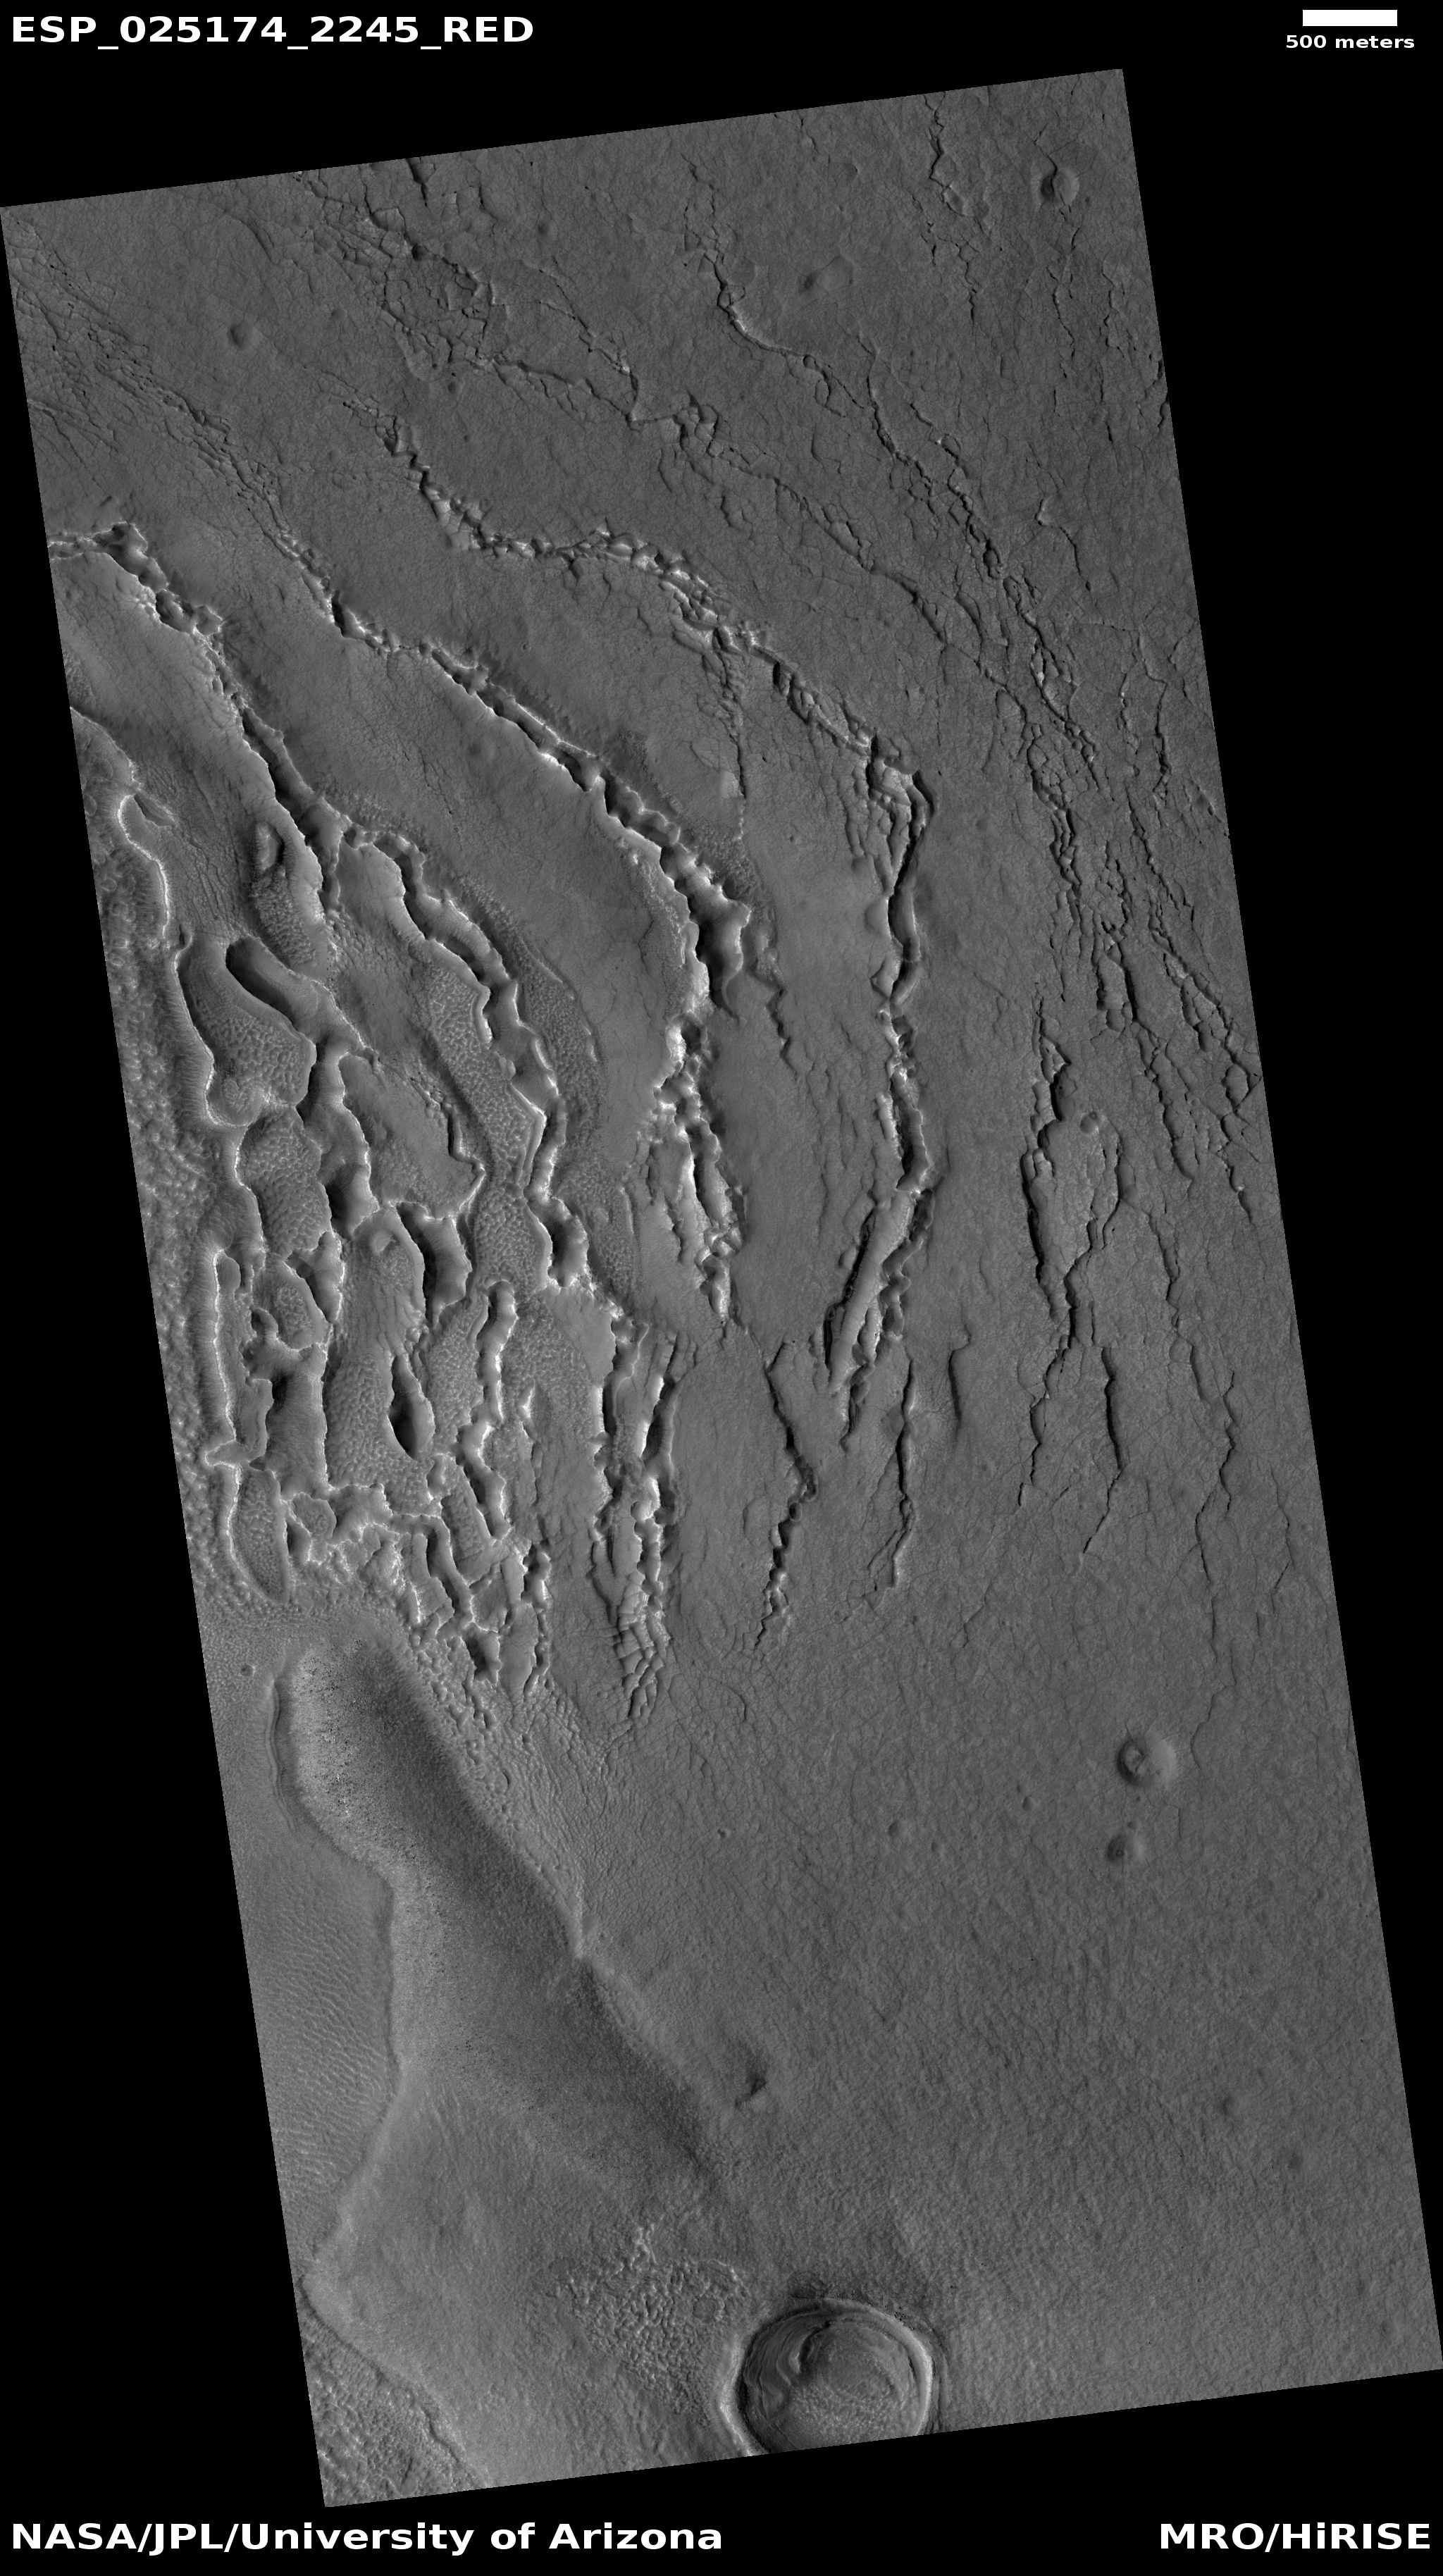 Wide view of ribbed terrain.